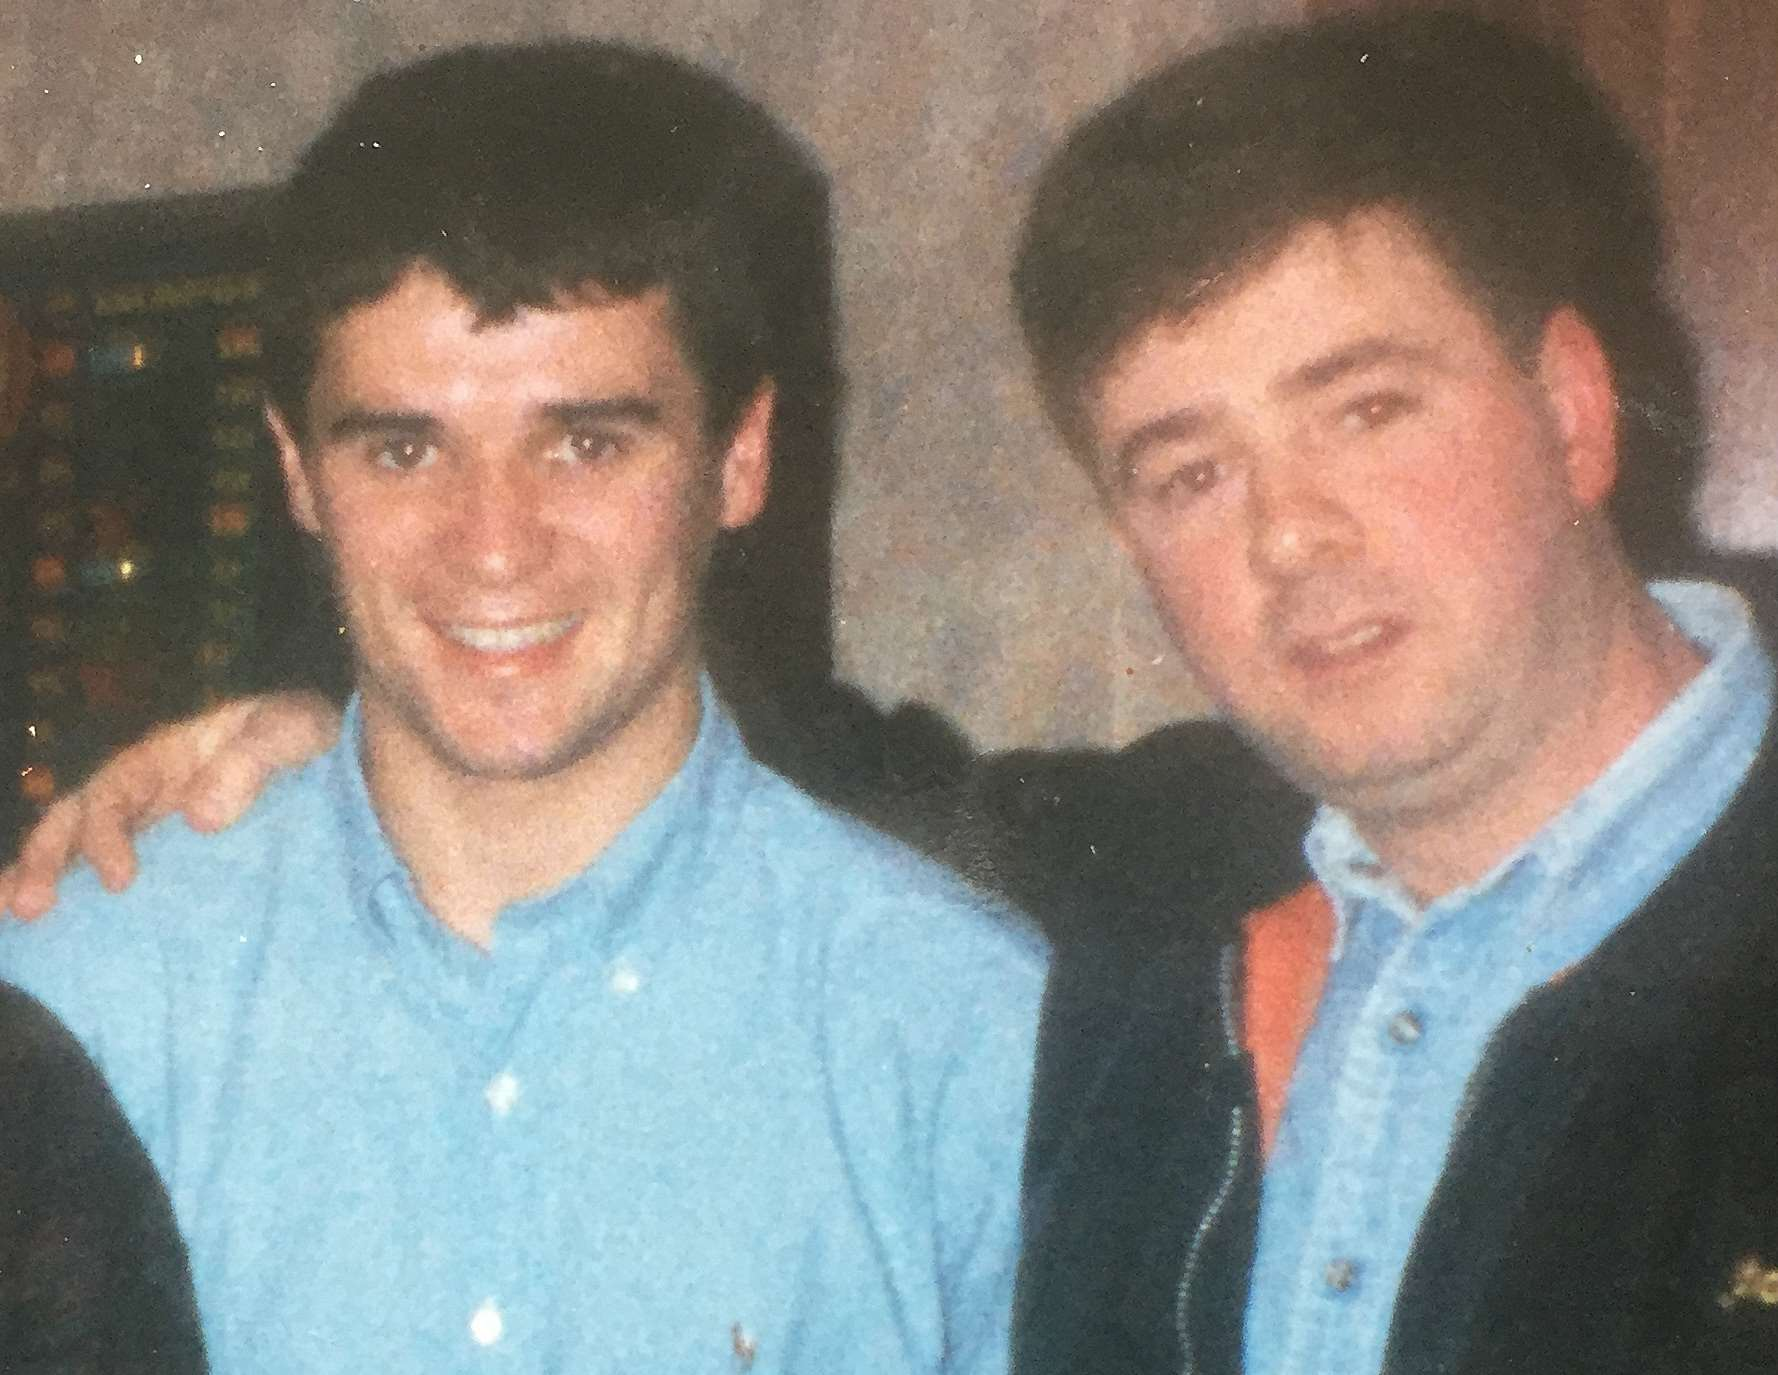 Paul O'Donnell and Roy Keane during Keane's playing days at Forest. They bumped into each other in a pub and Keane stayed with Mr O'Donnell and his friends all evening.